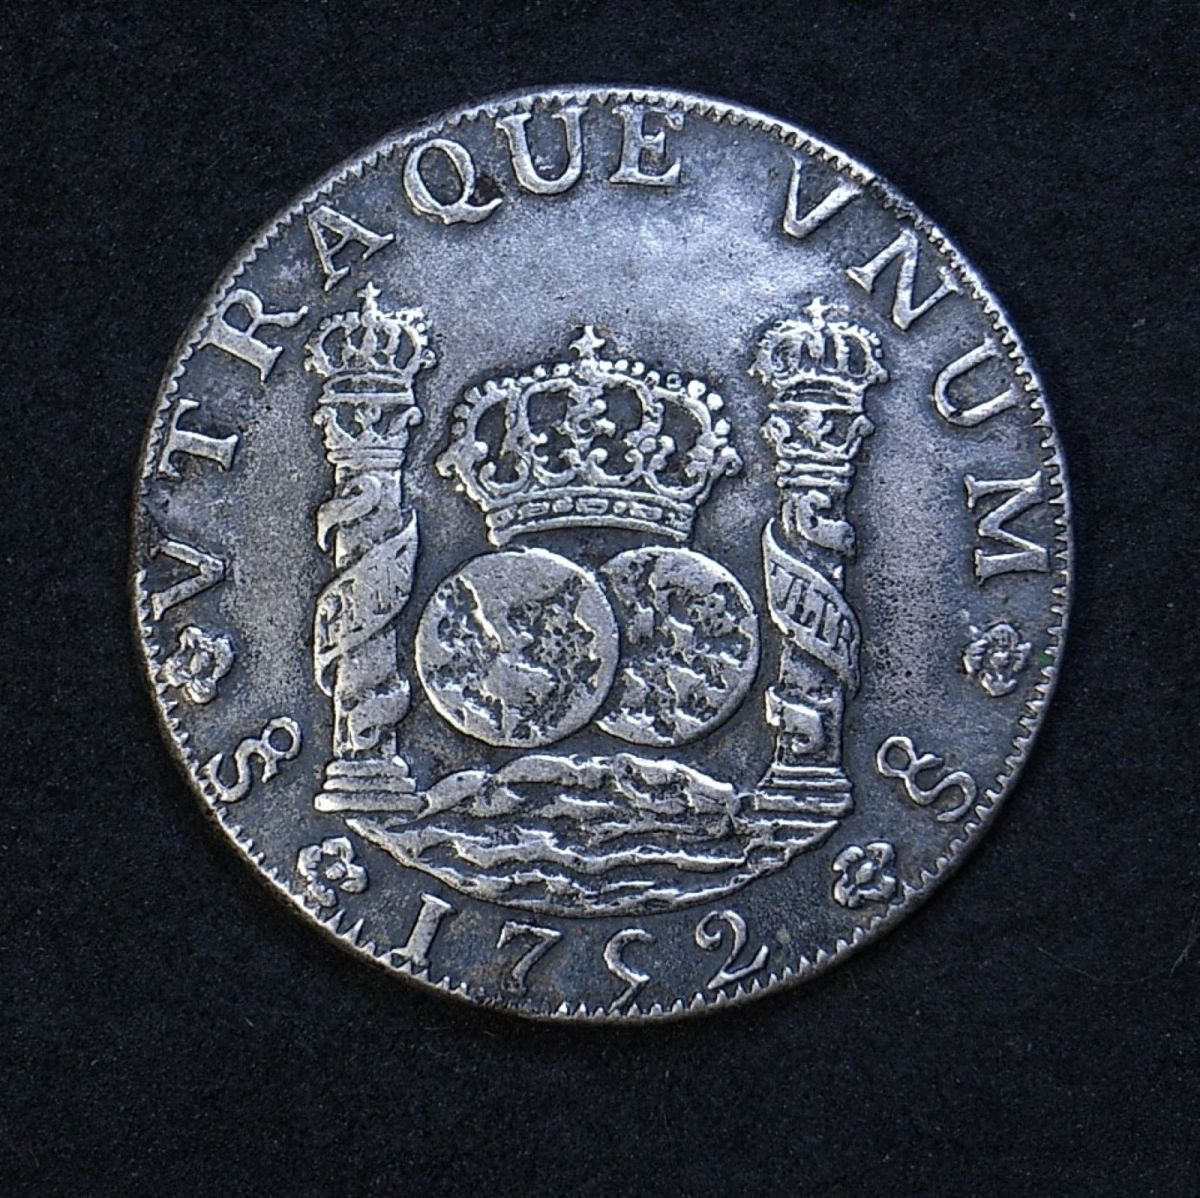 Contemporary counterfeit 8 Reales 1752 date side showing santiago mintmark